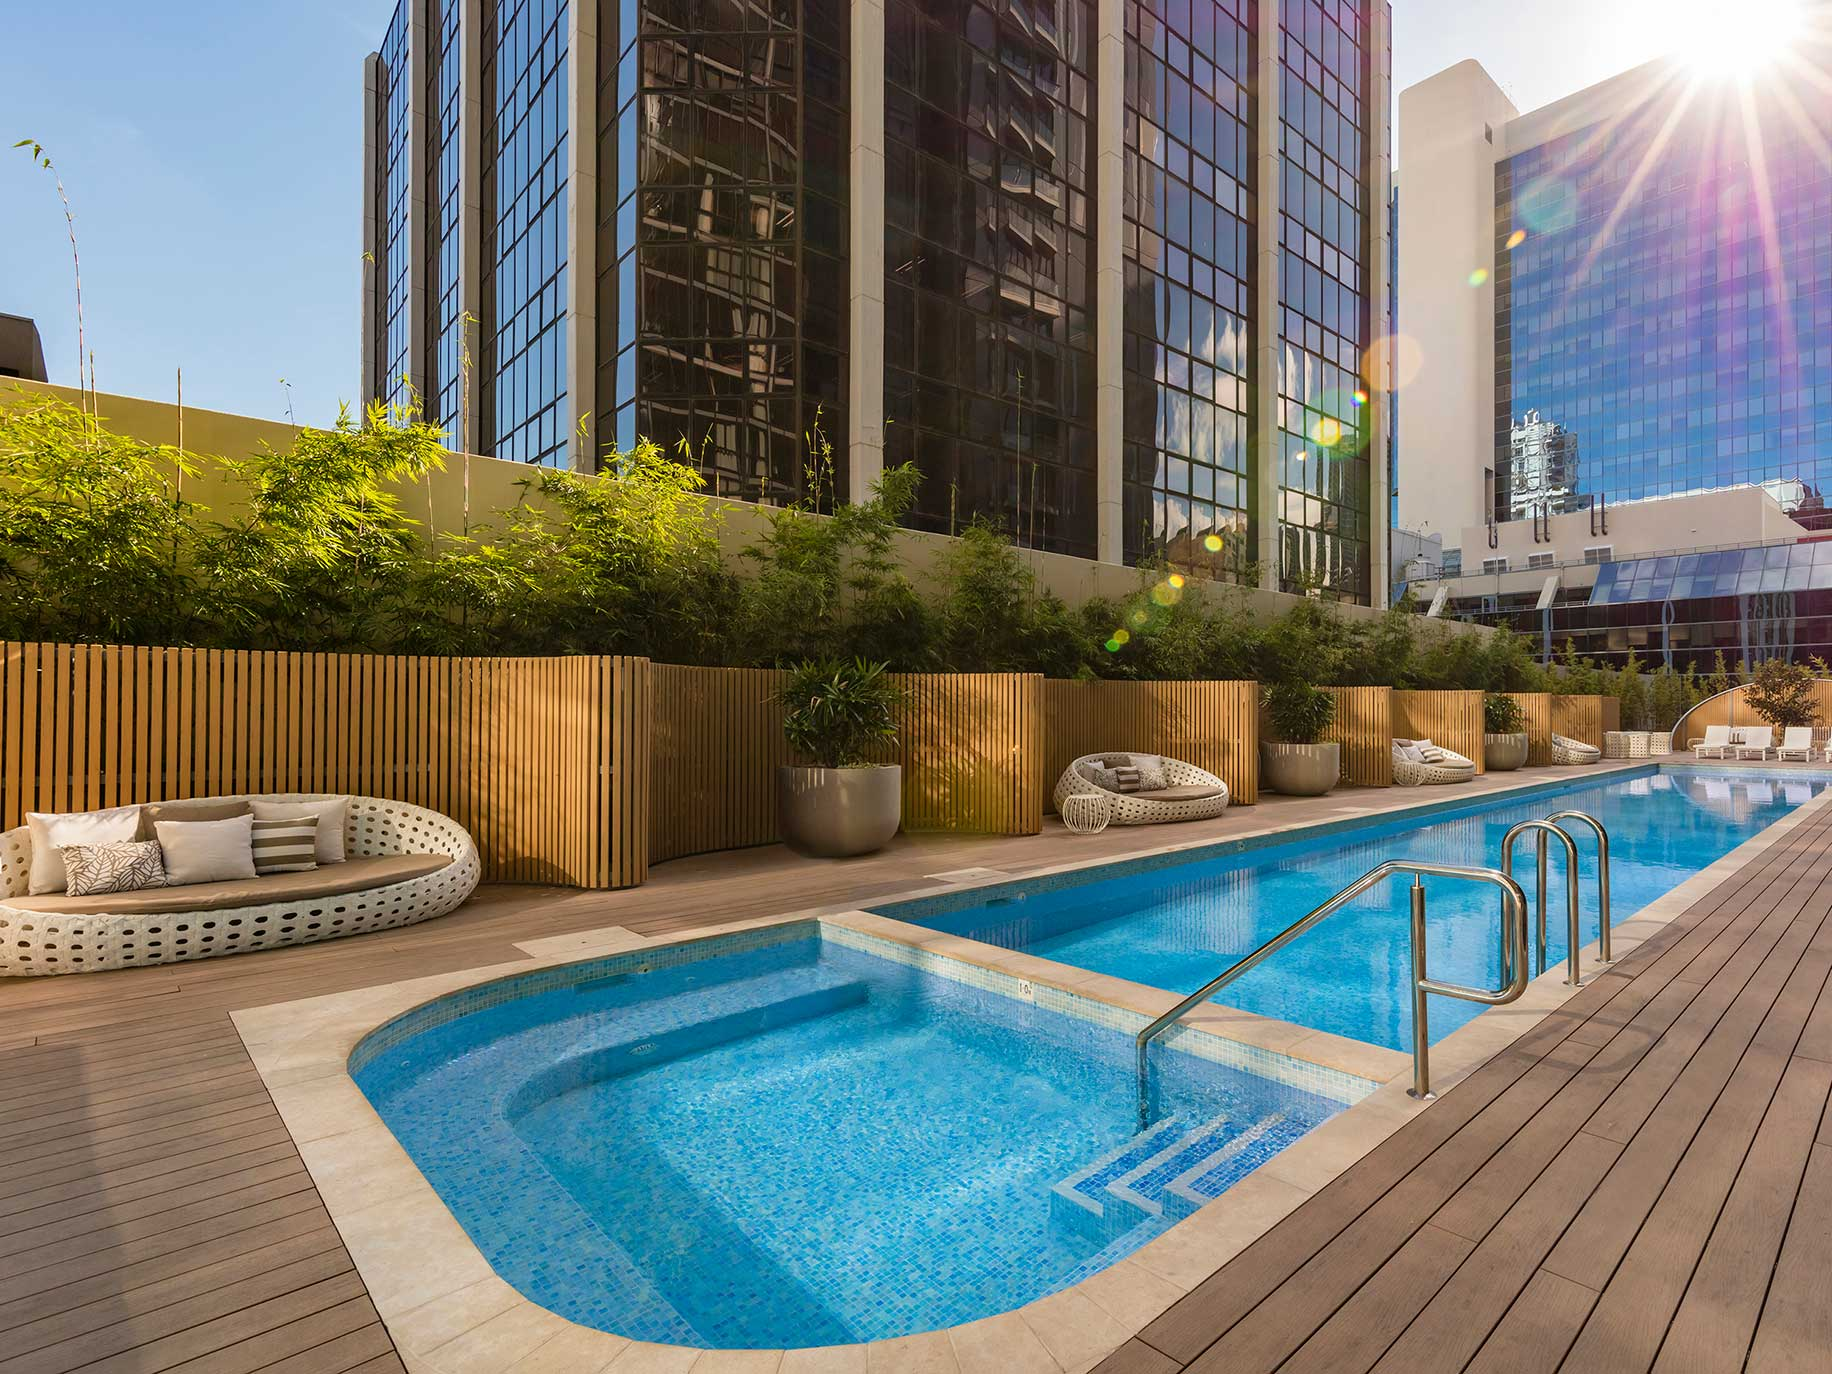 The resort style pool, garden and deck at SKYE Hotel Suites Parramatta